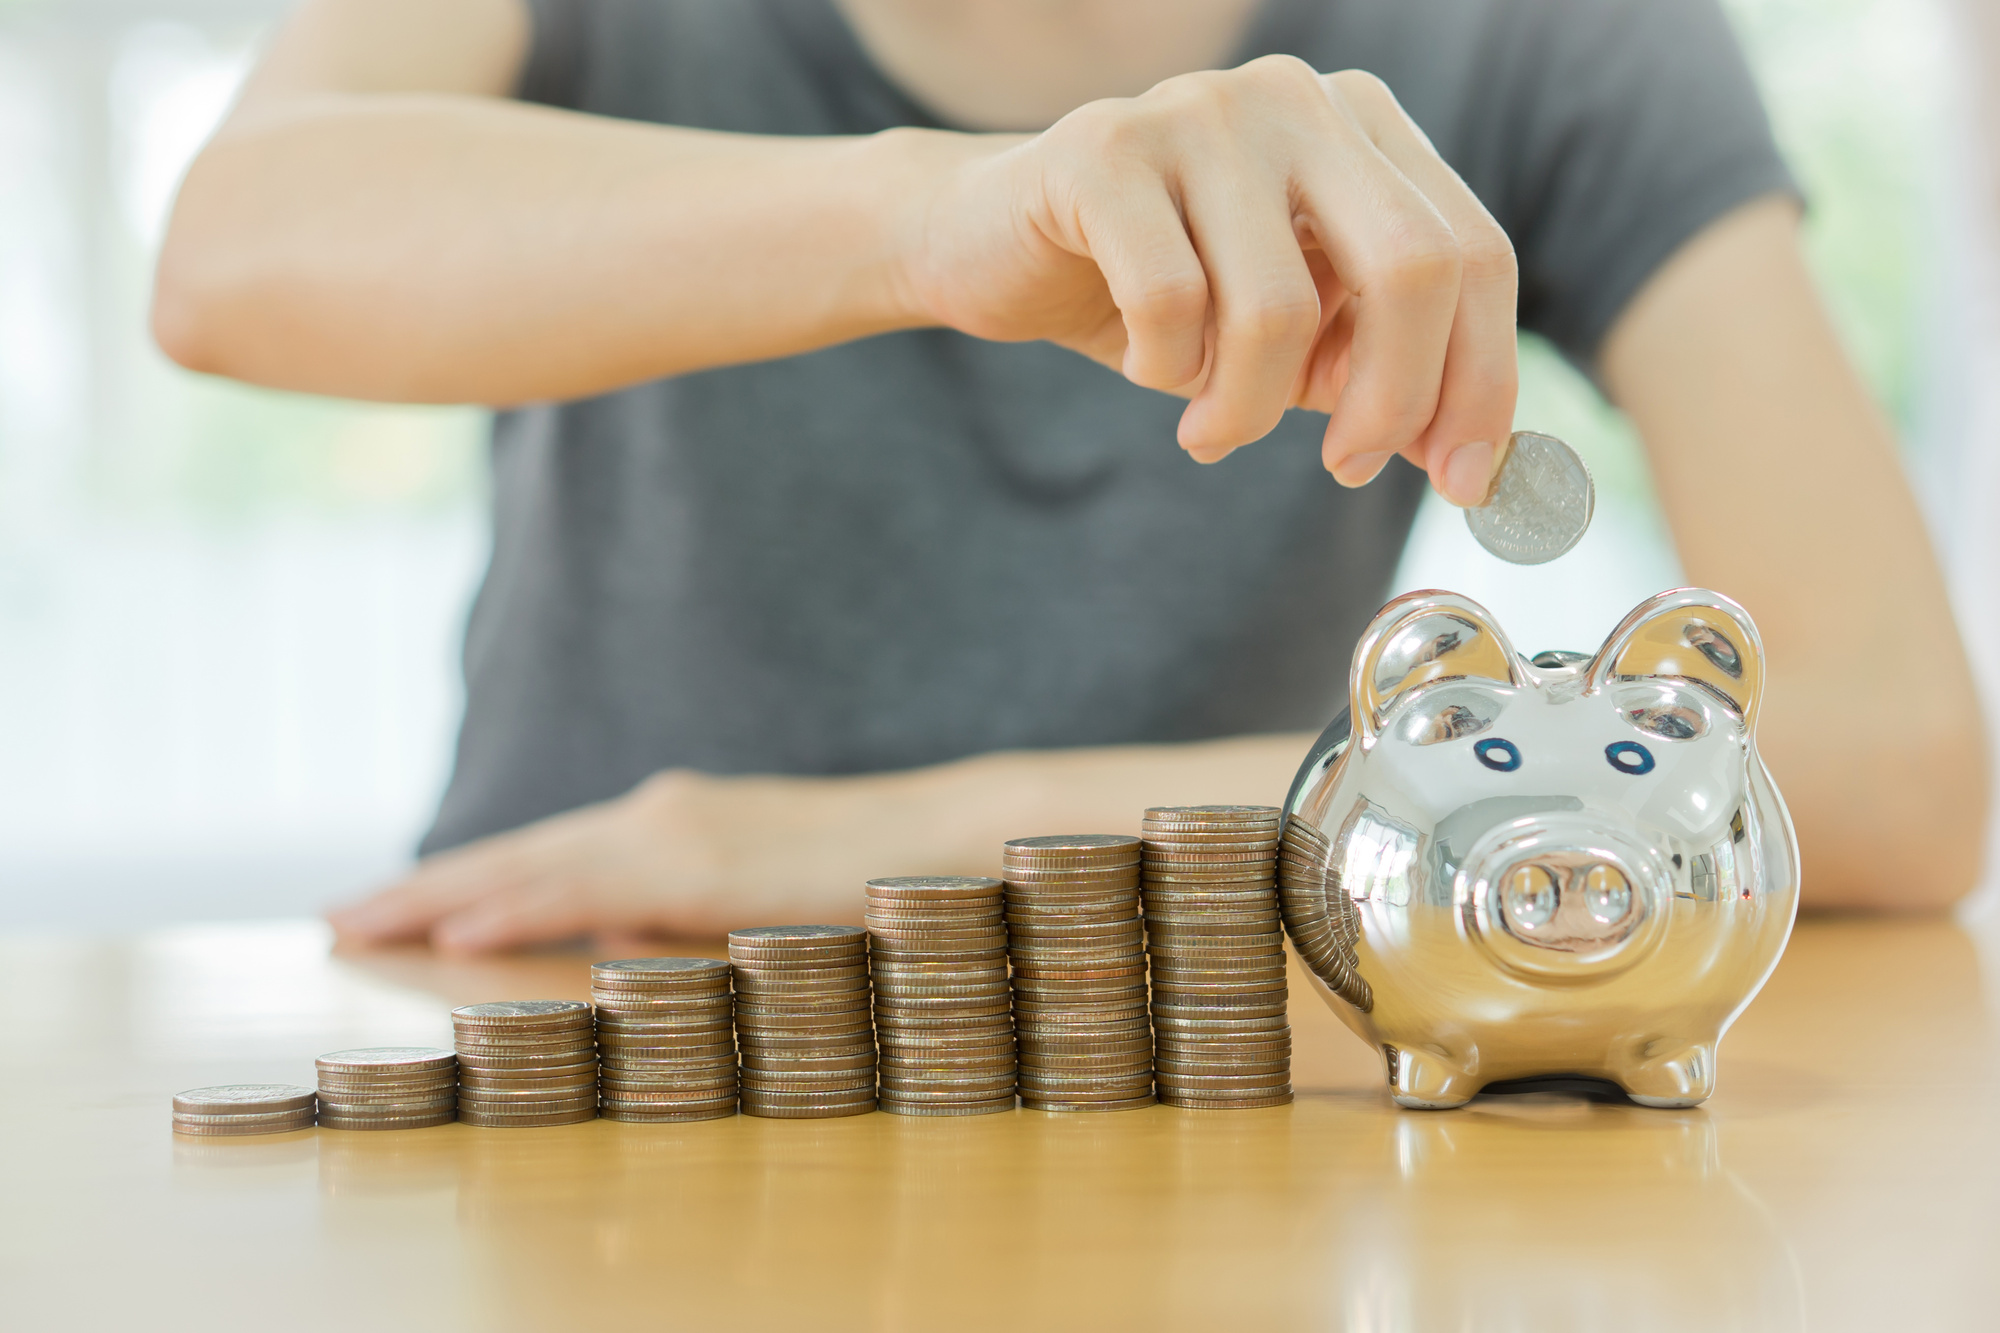 Wondering if you should make the jump on creating financial plan? Check out our article to see why it's a good idea to look into.